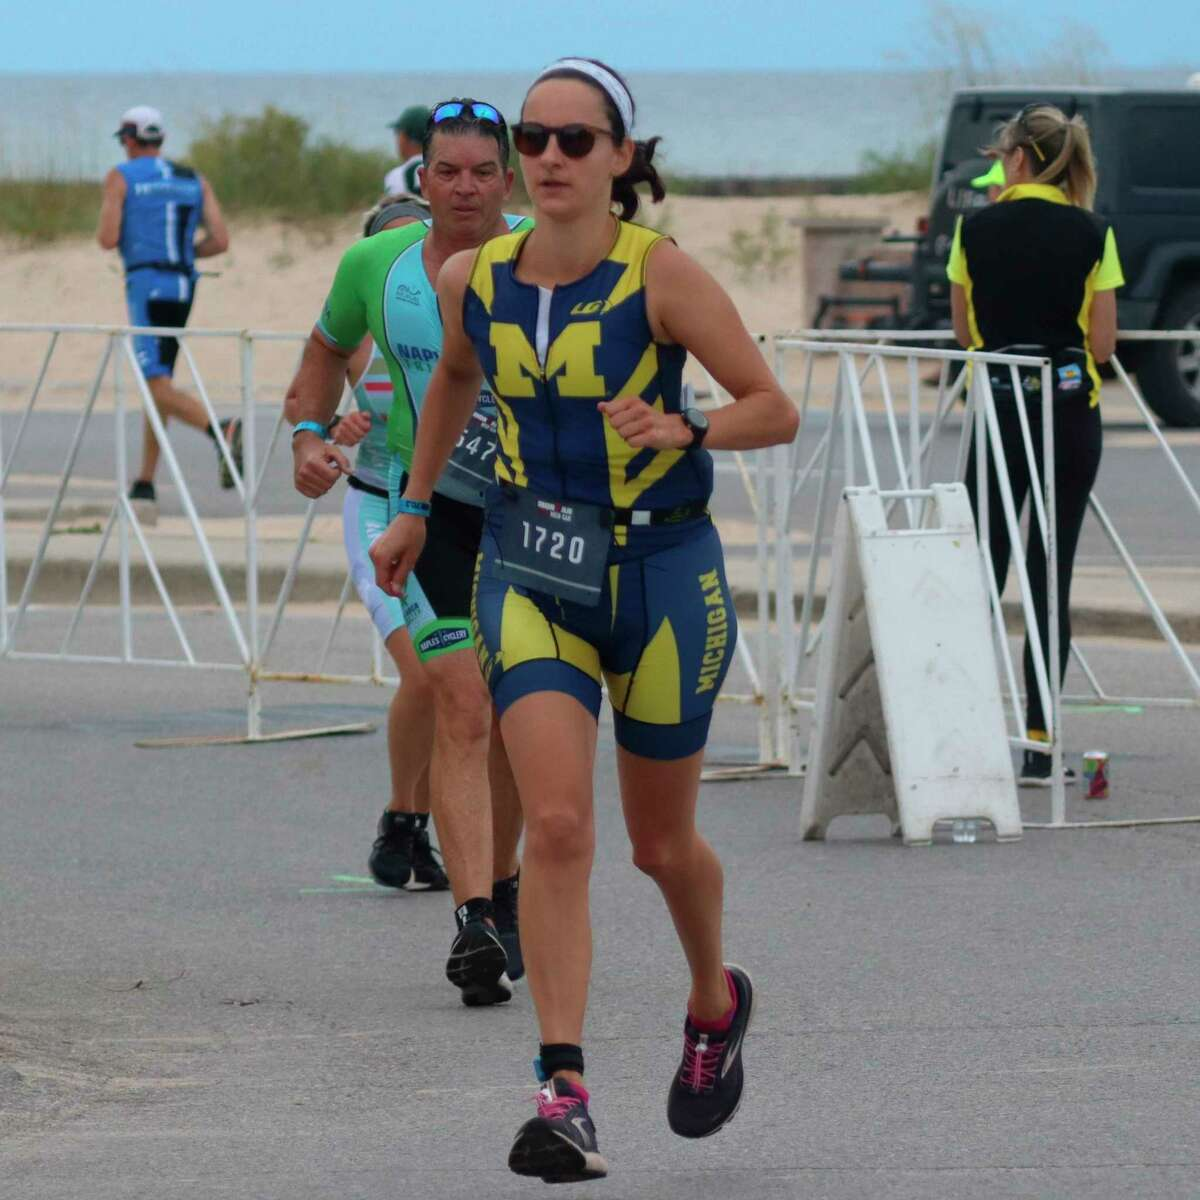 Runners finished their triathlon at Frankfort Beach on Sept. 12. (Robert Myers/Record Patriot)